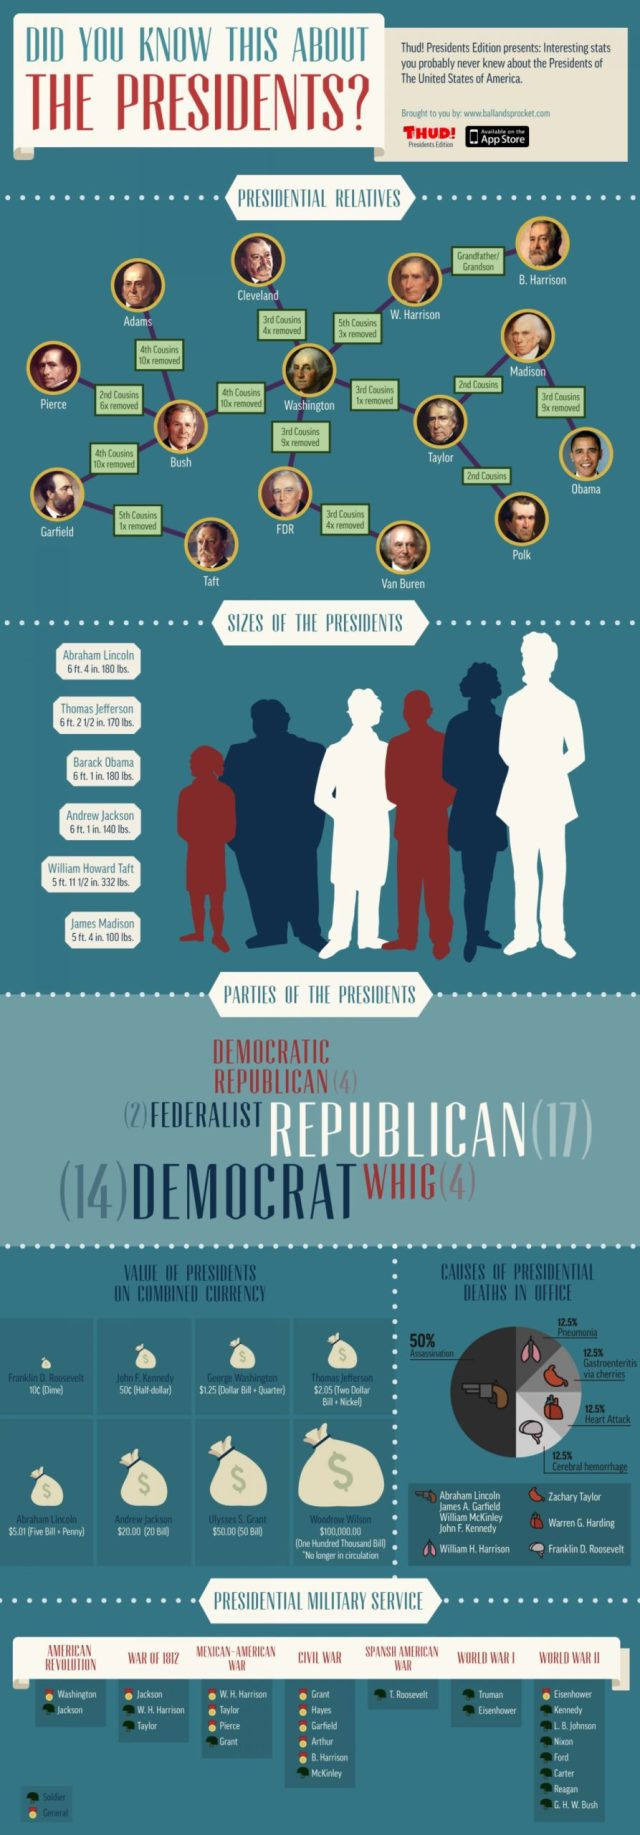 Did You Know This About The Presidents